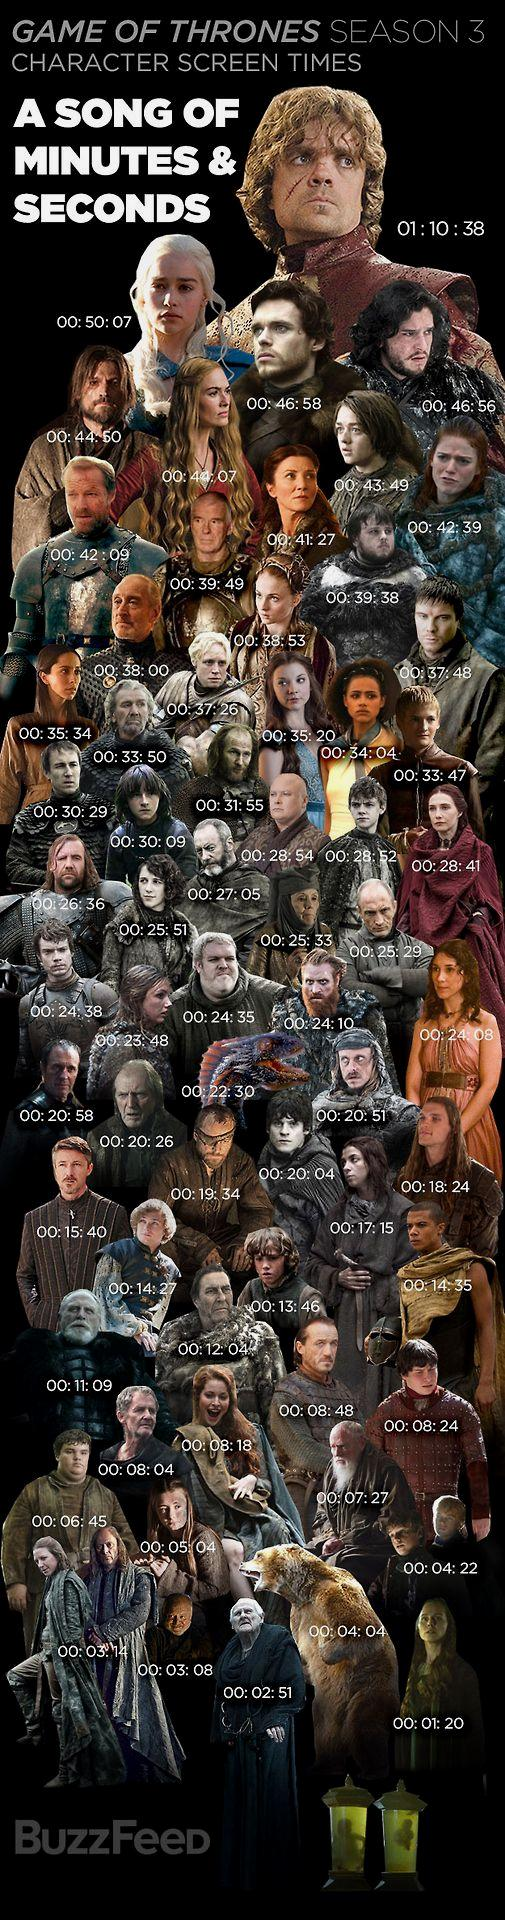 #Game of Thrones Season 3 Character Screen Times Images by…